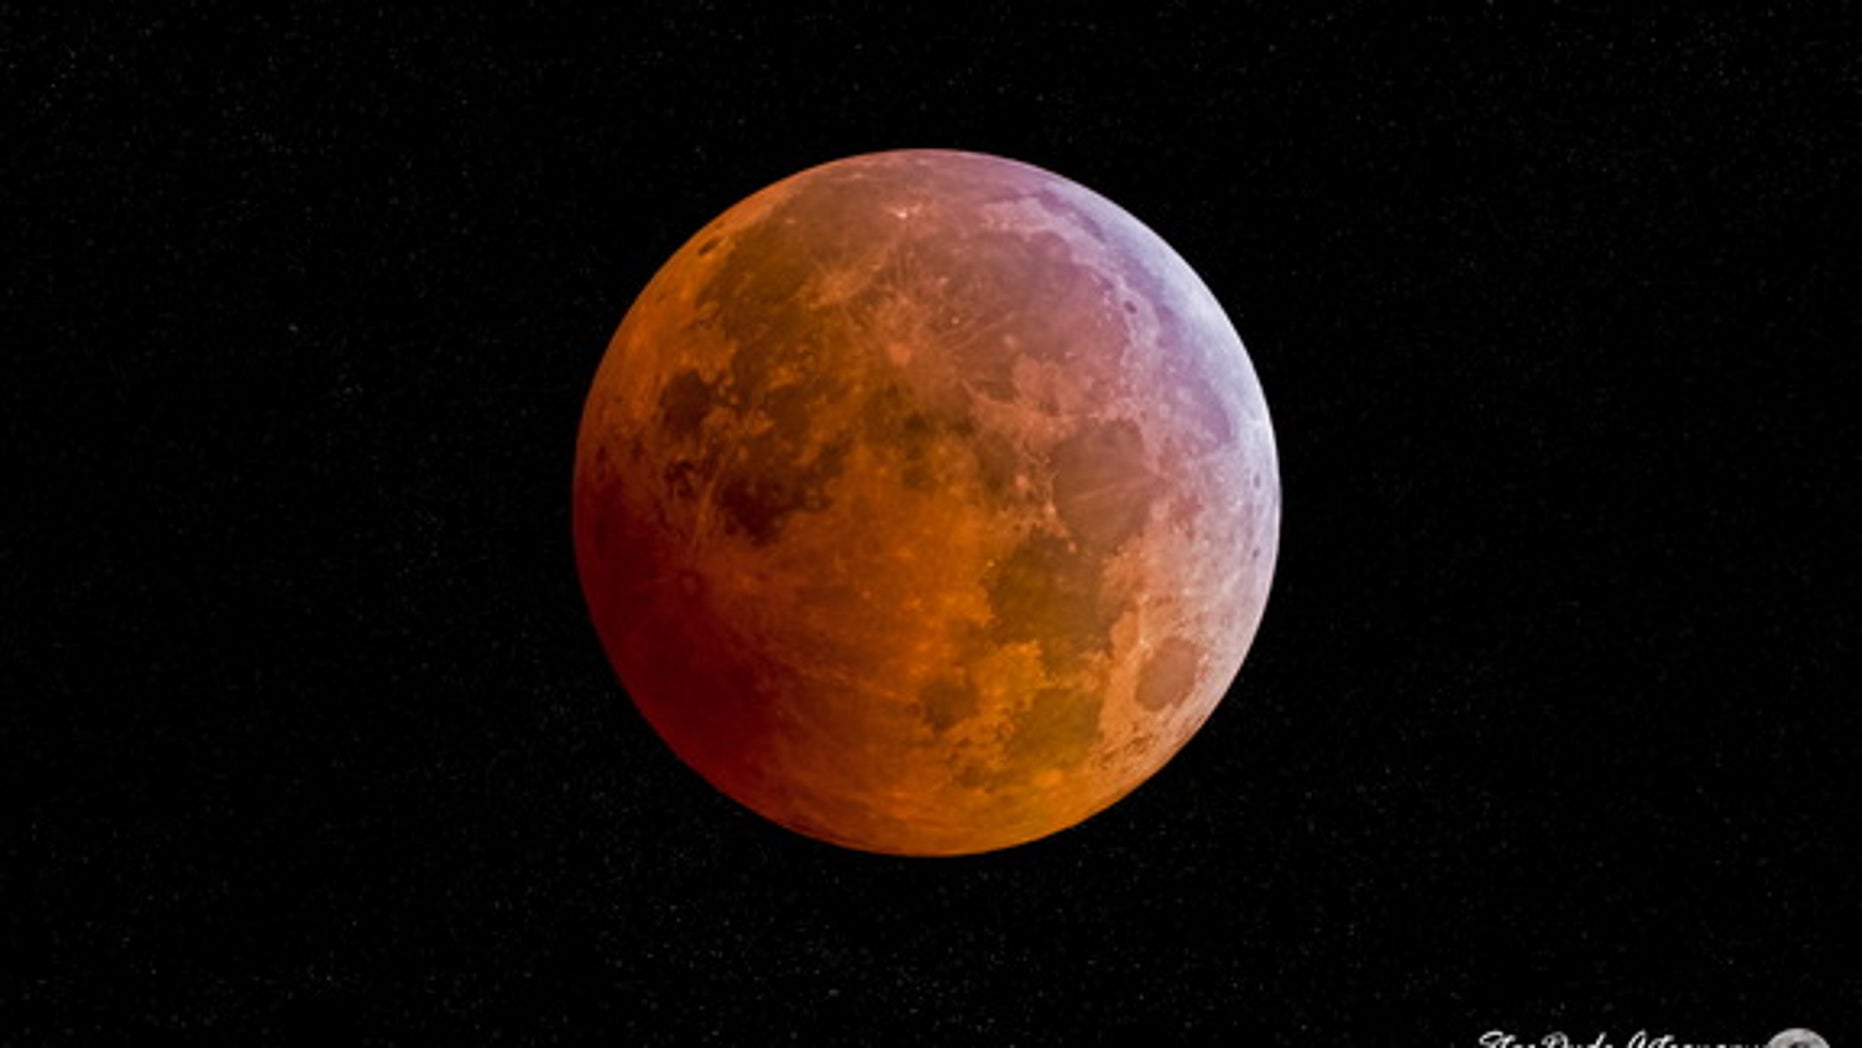 Astrophotographer Maxwell Palau captured this view of a total lunar eclipse from San Diego, California, on Oct. 8, 2014.